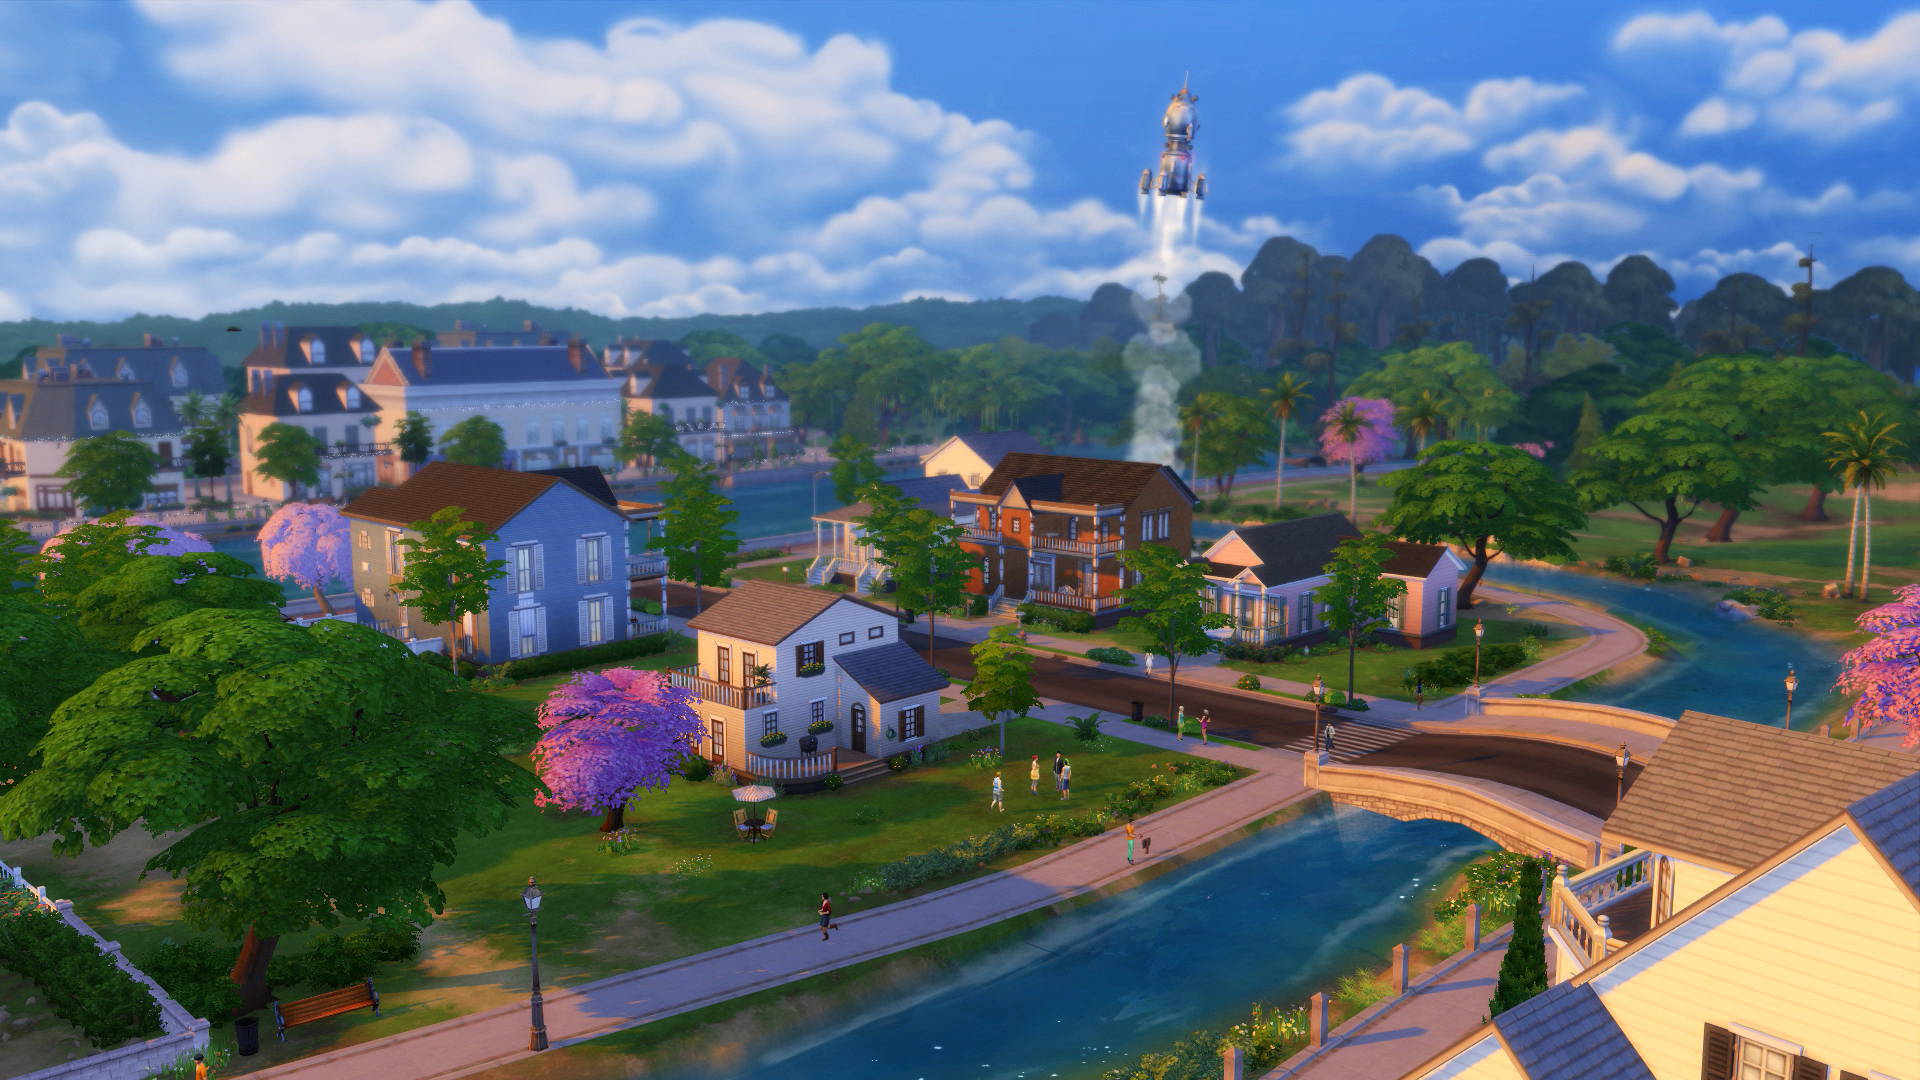 Free Download The Sims 4 Wallpapers 17690 Wallpaper Wallpaper Hd